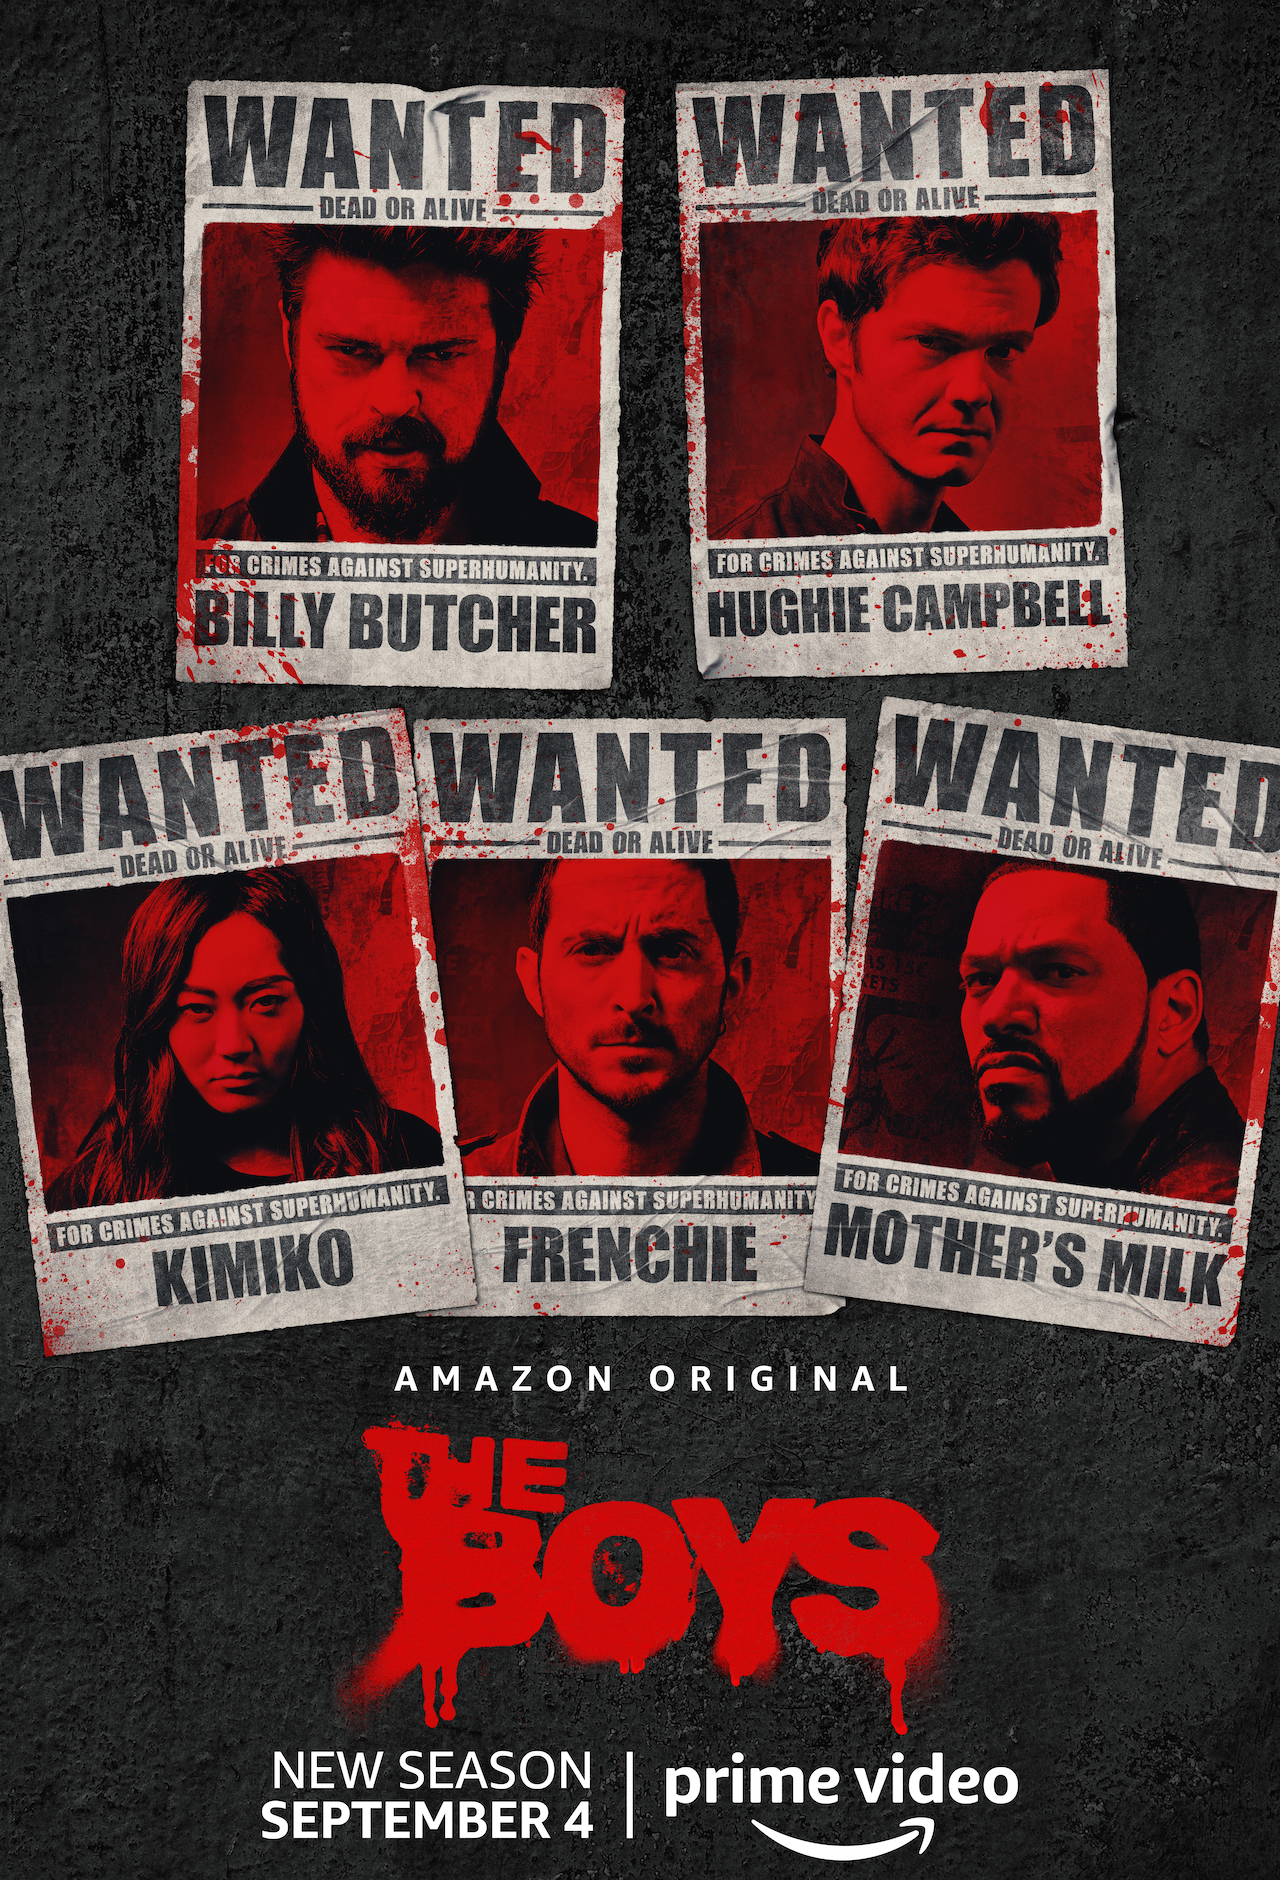 The Boys 'wanted' flier